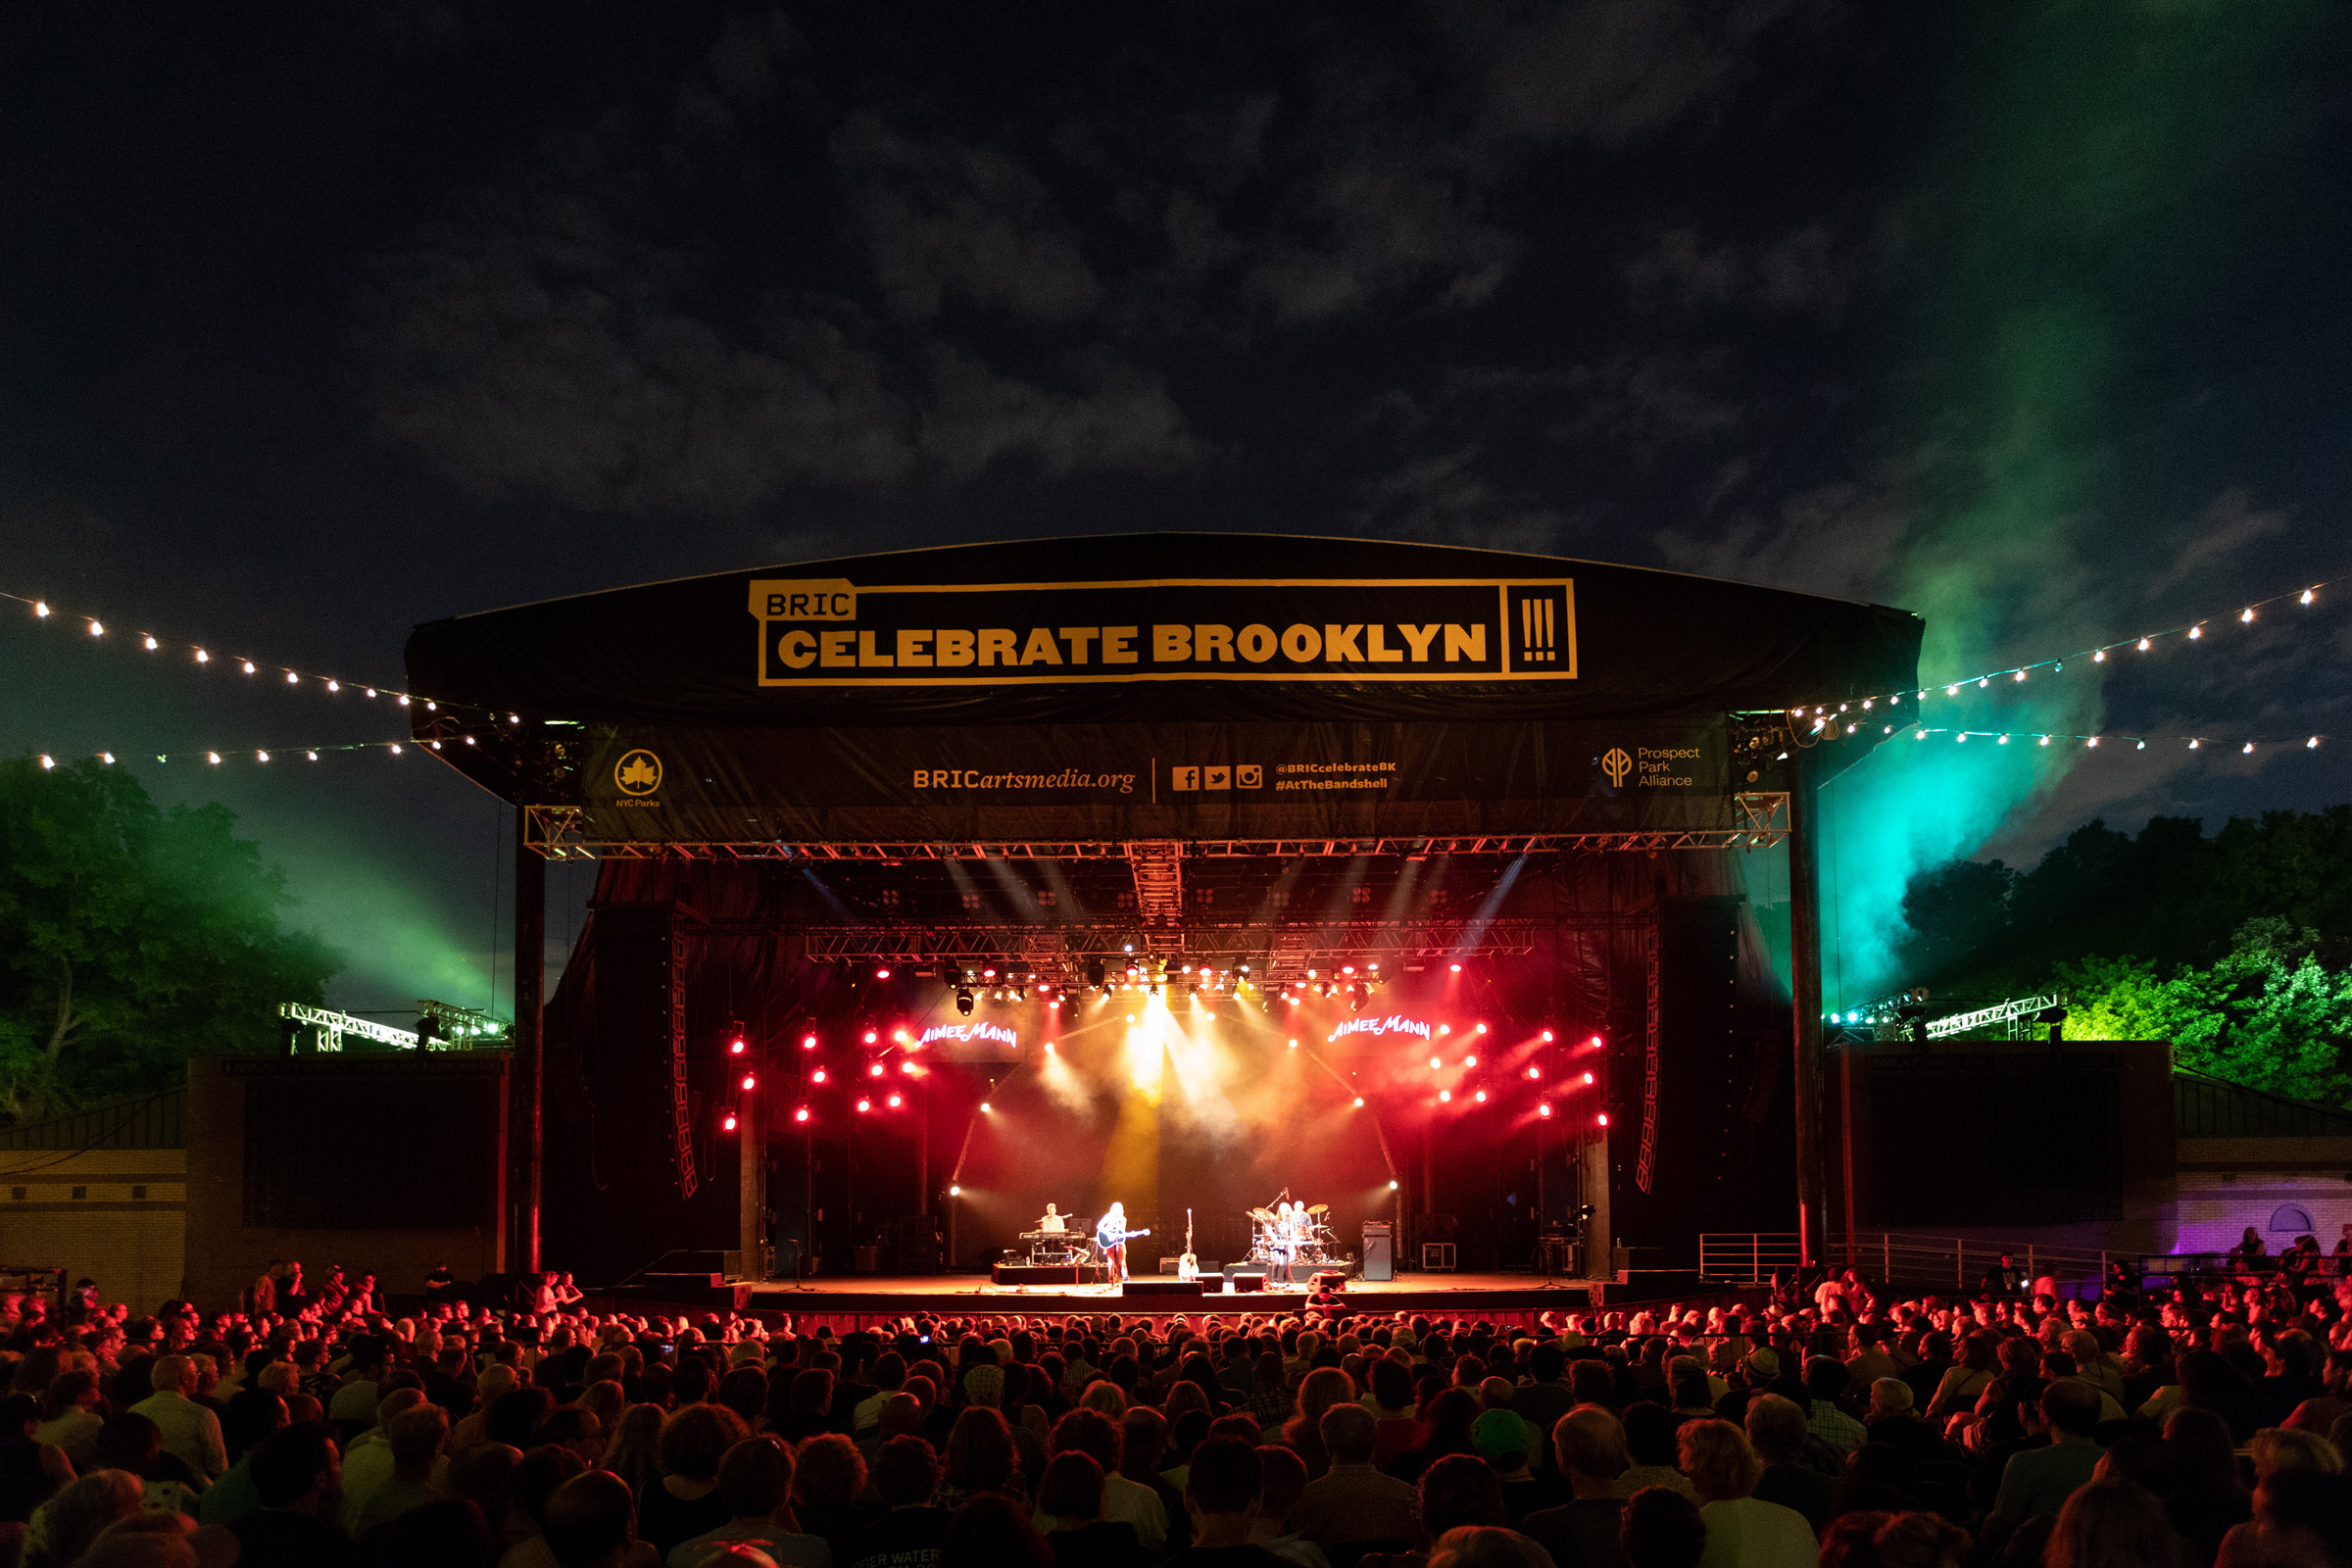 2018 BRIC CELEBRATE BROOKLYN! FESTIVAL | BRIC